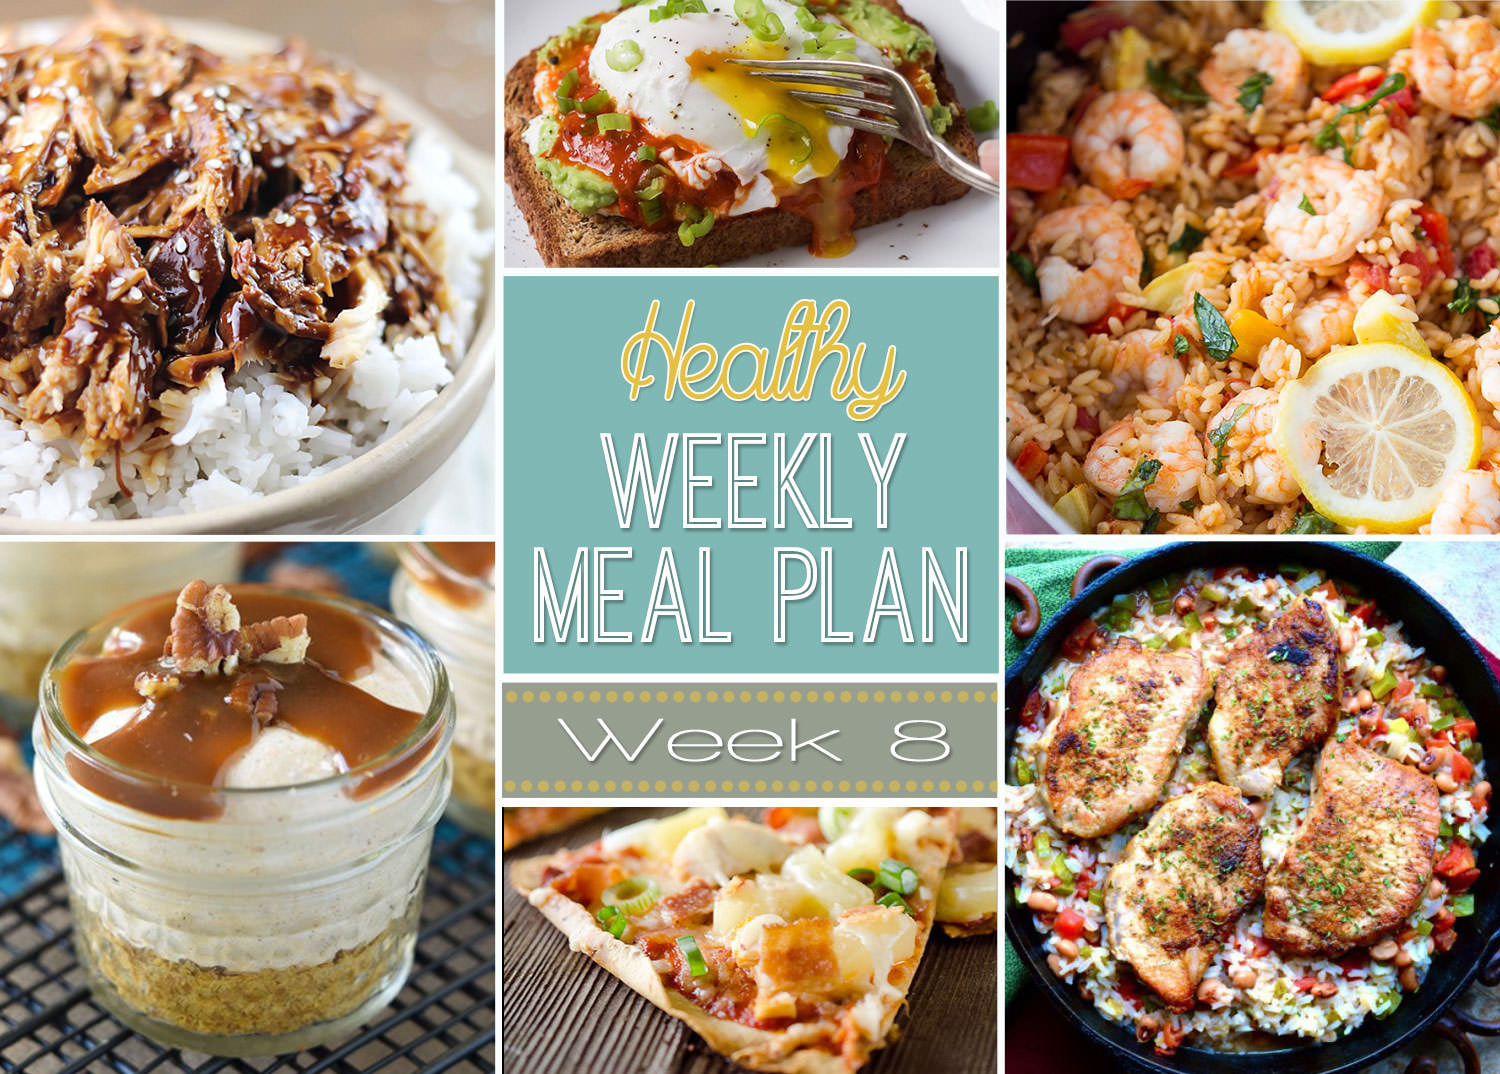 Healthy Weekly Meal Plan Week #8